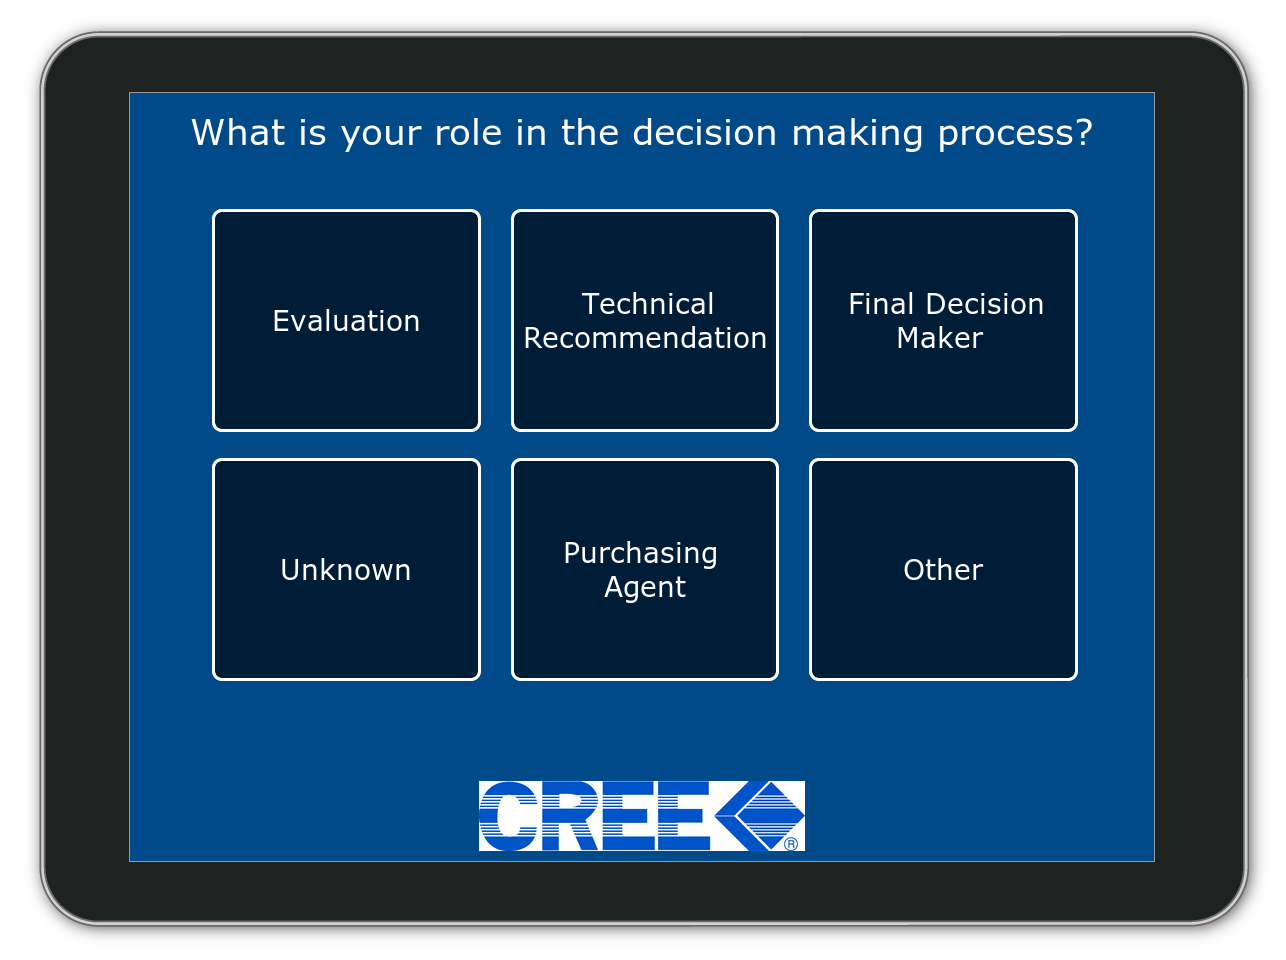 Are you a decision maker?